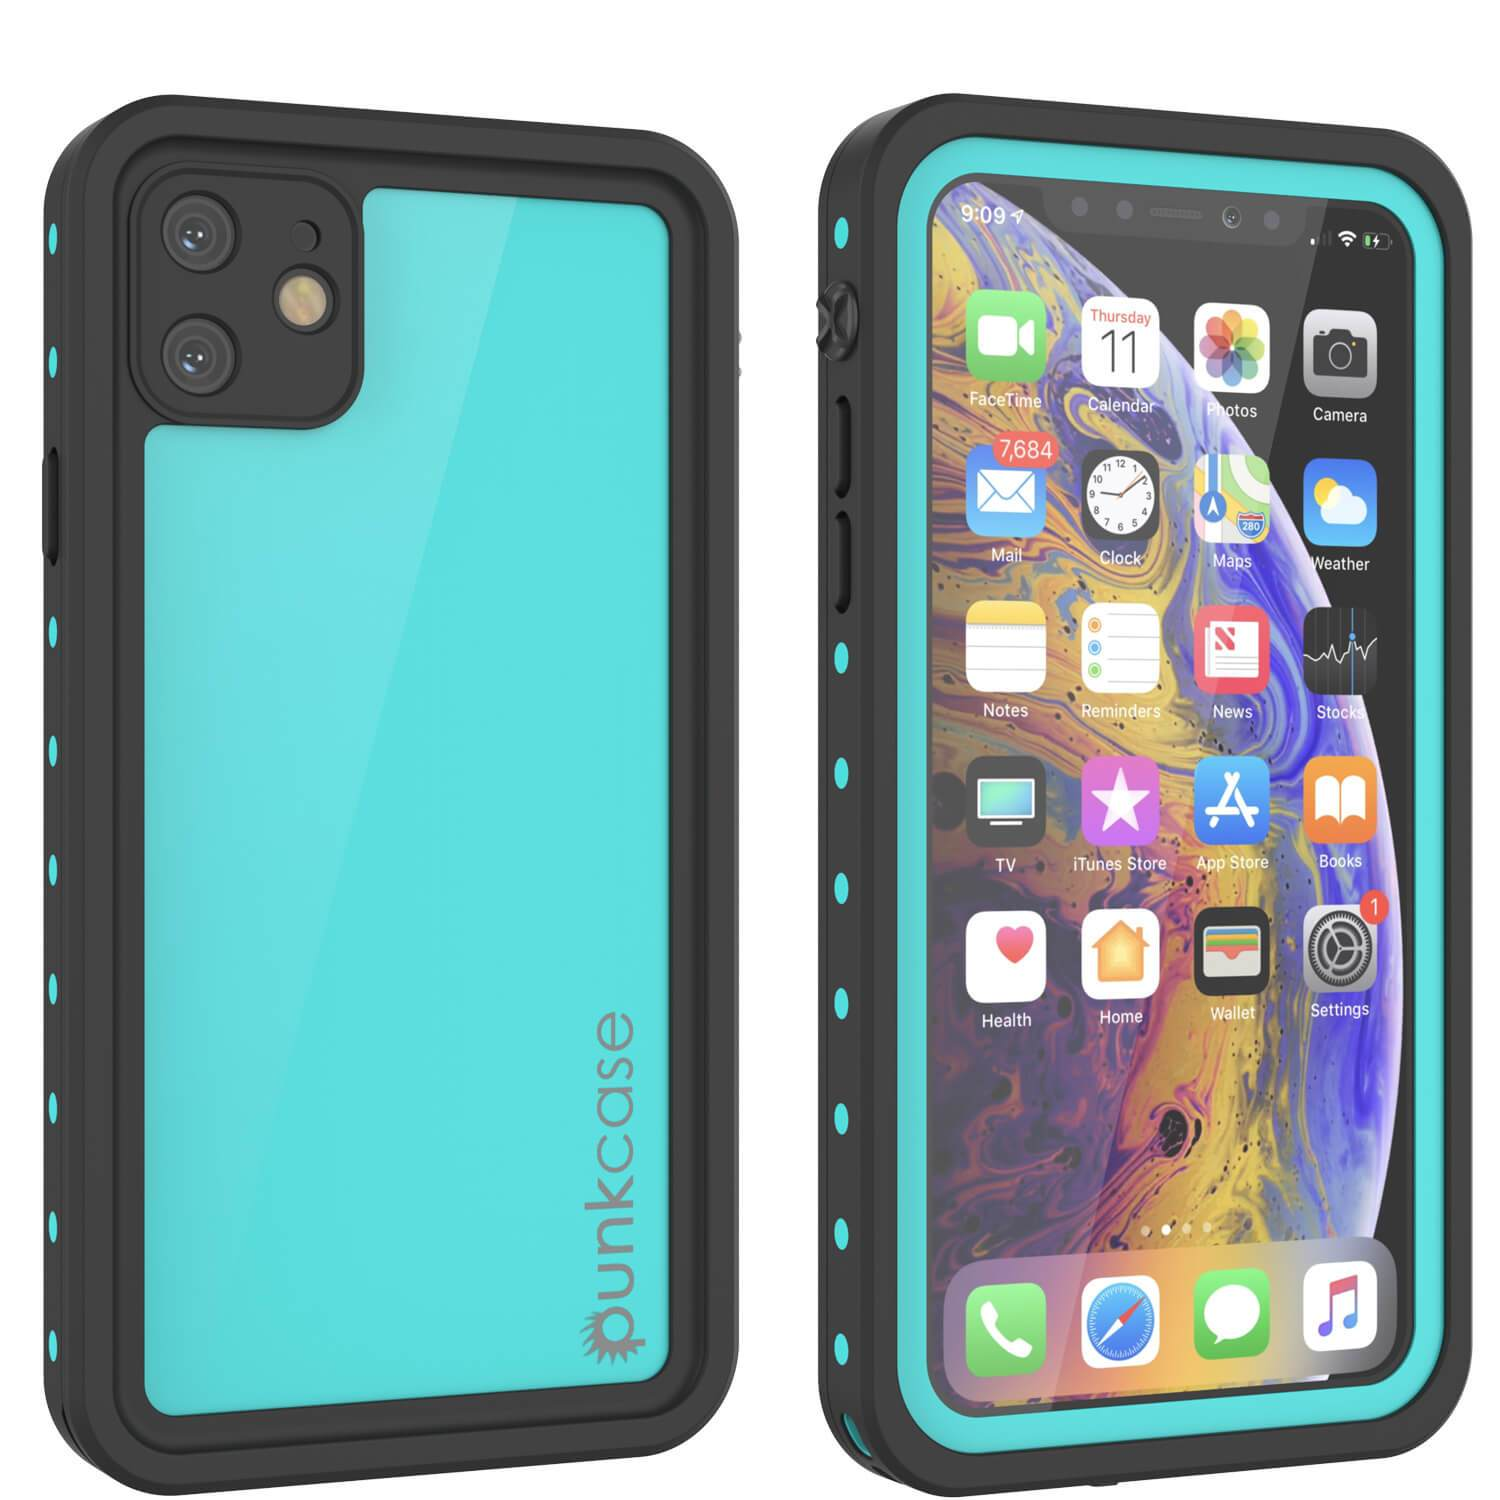 iPhone 11 Waterproof IP68 Case, Punkcase [Teal] [StudStar Series] [Slim Fit]